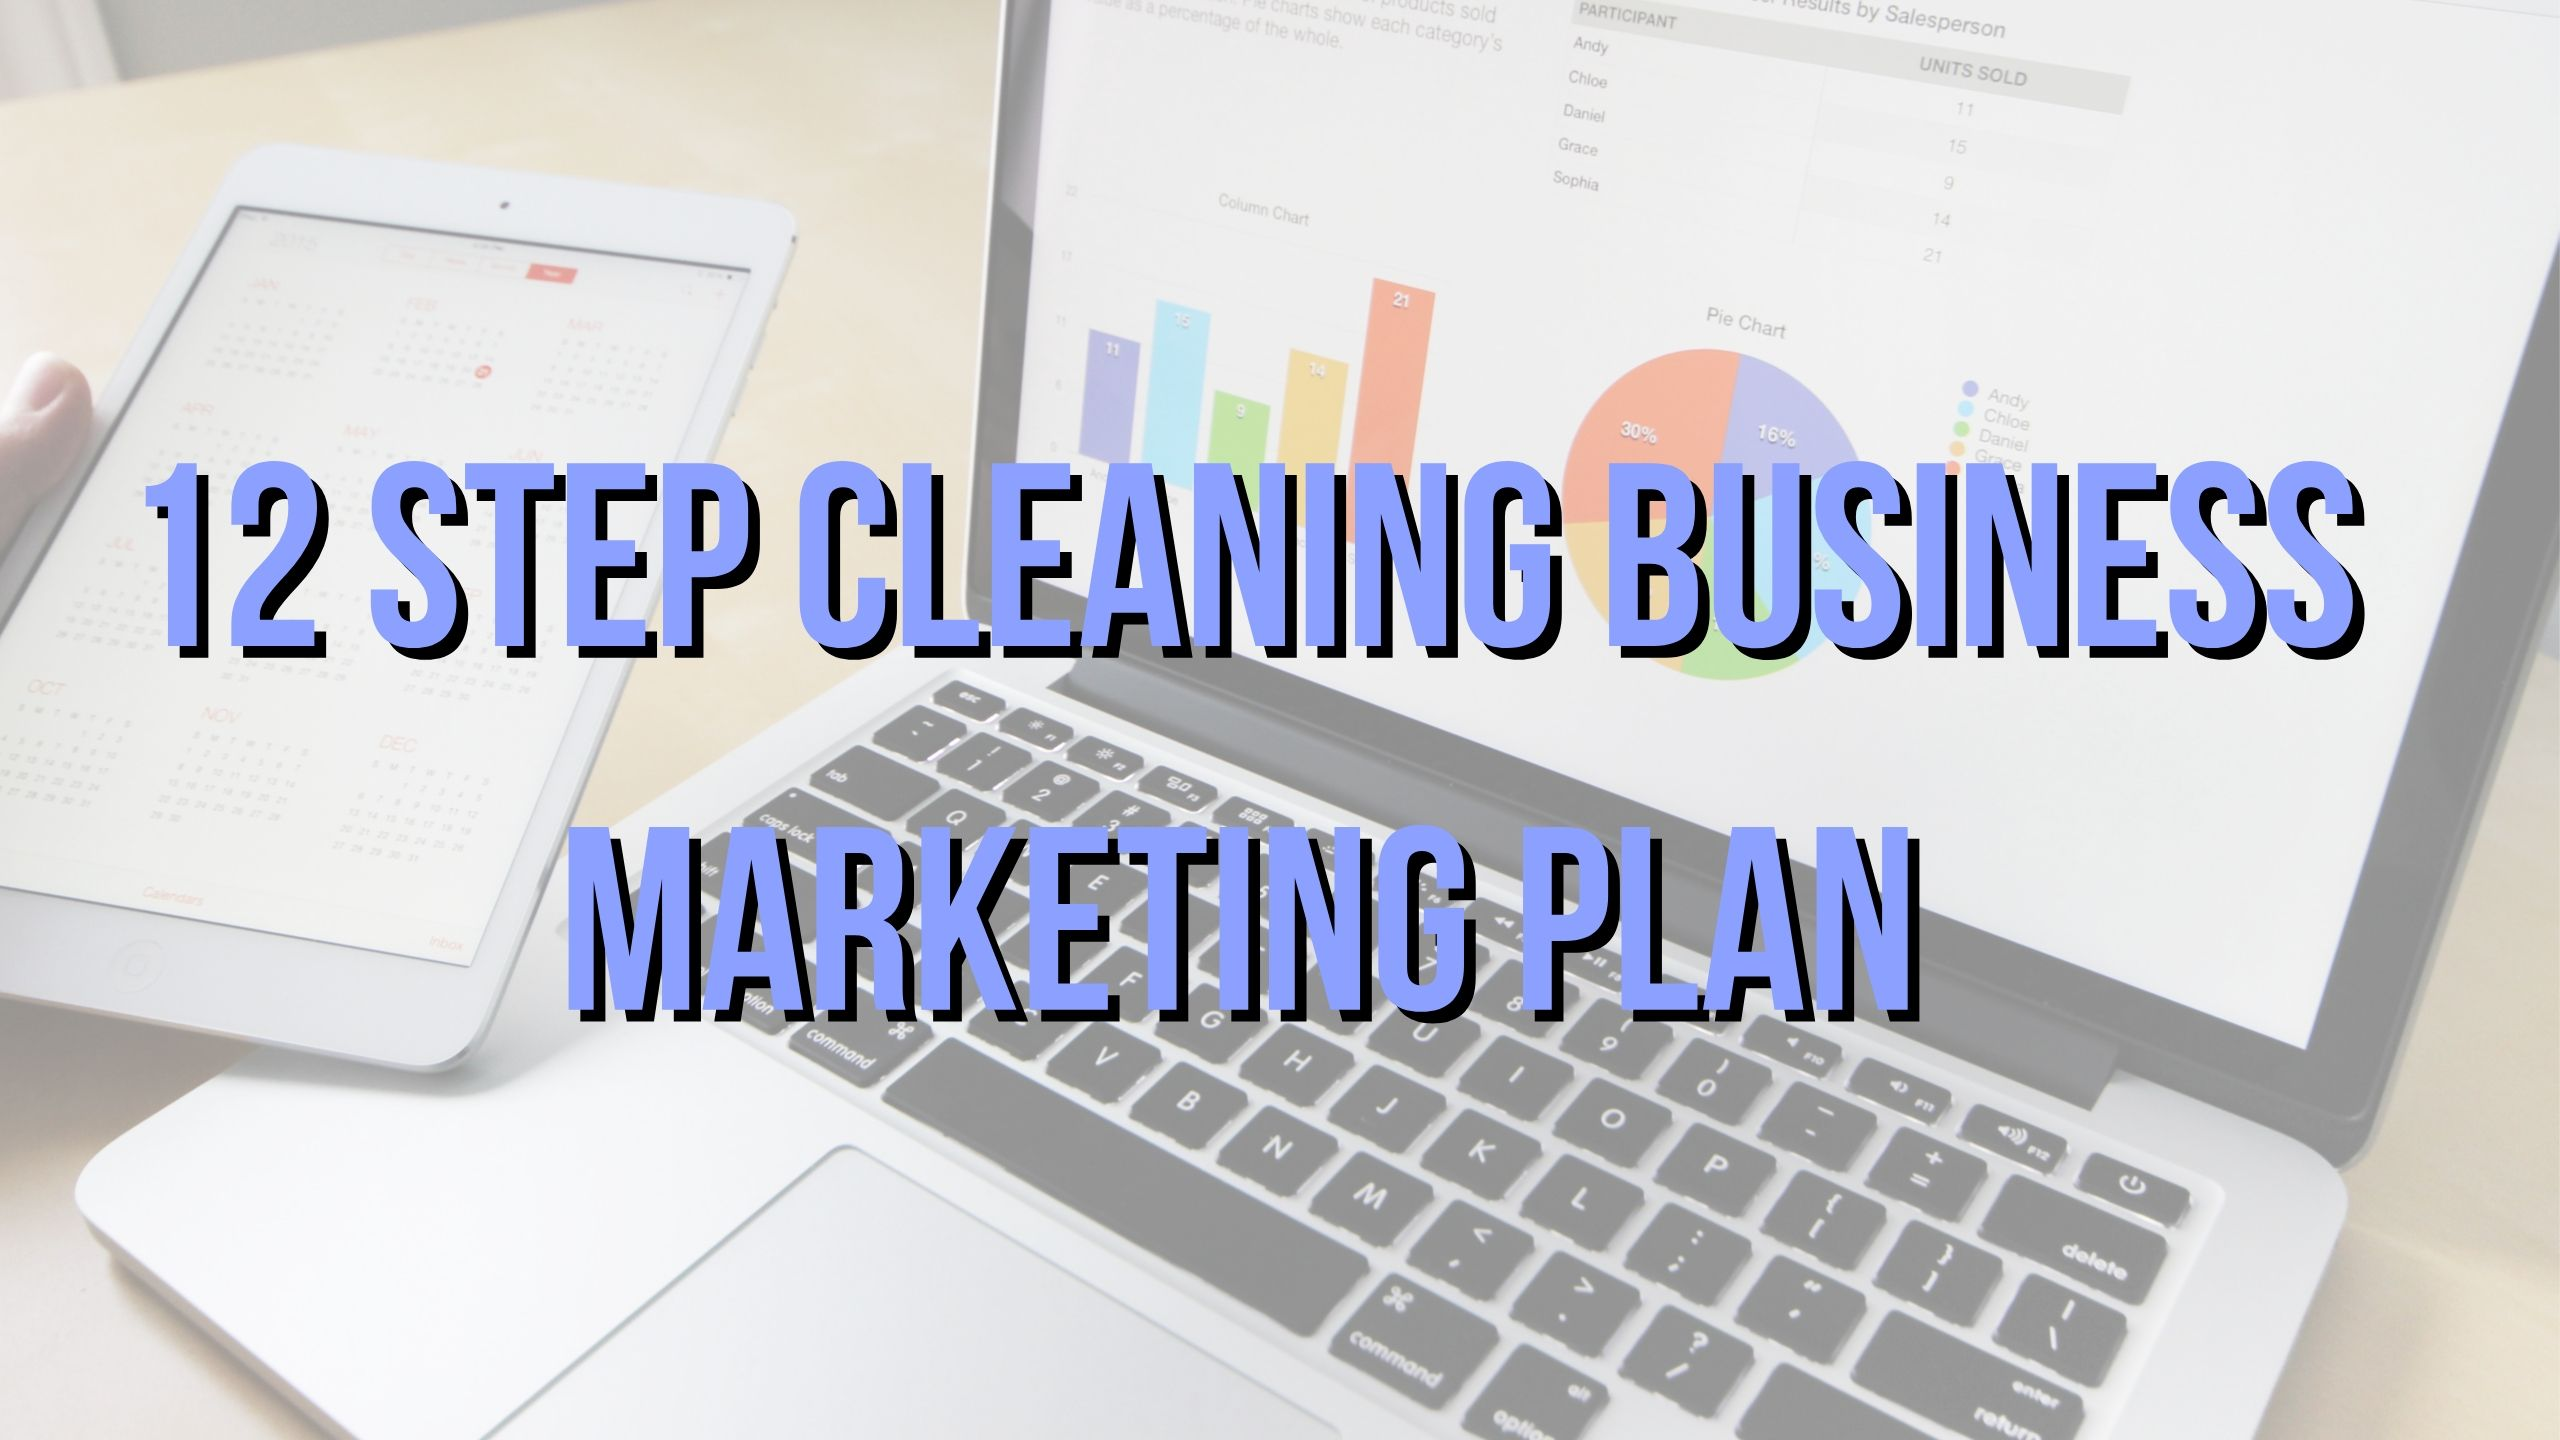 Cleaning Business Marketing Plan